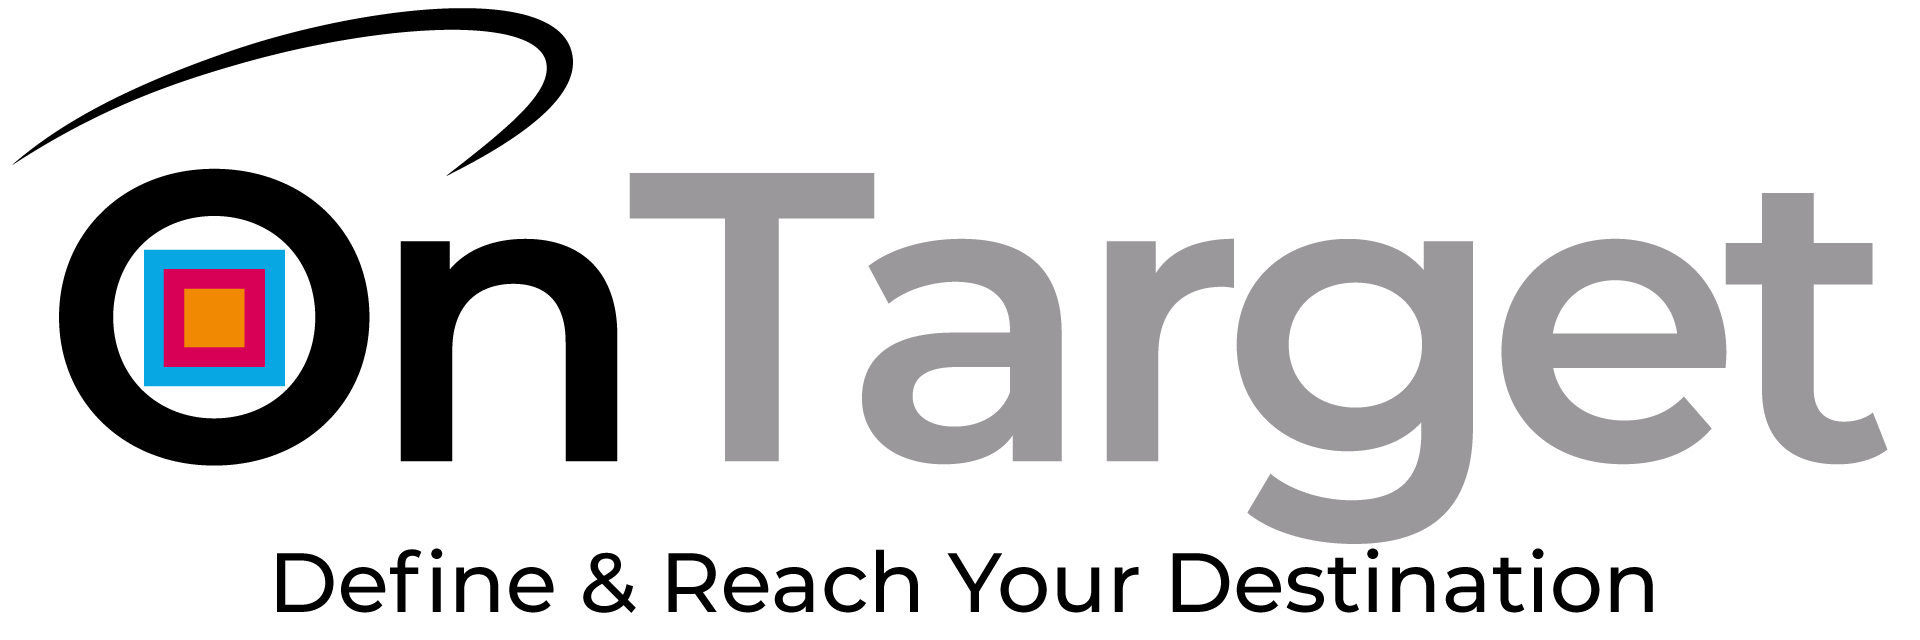 EMMsphere Ontarget Services